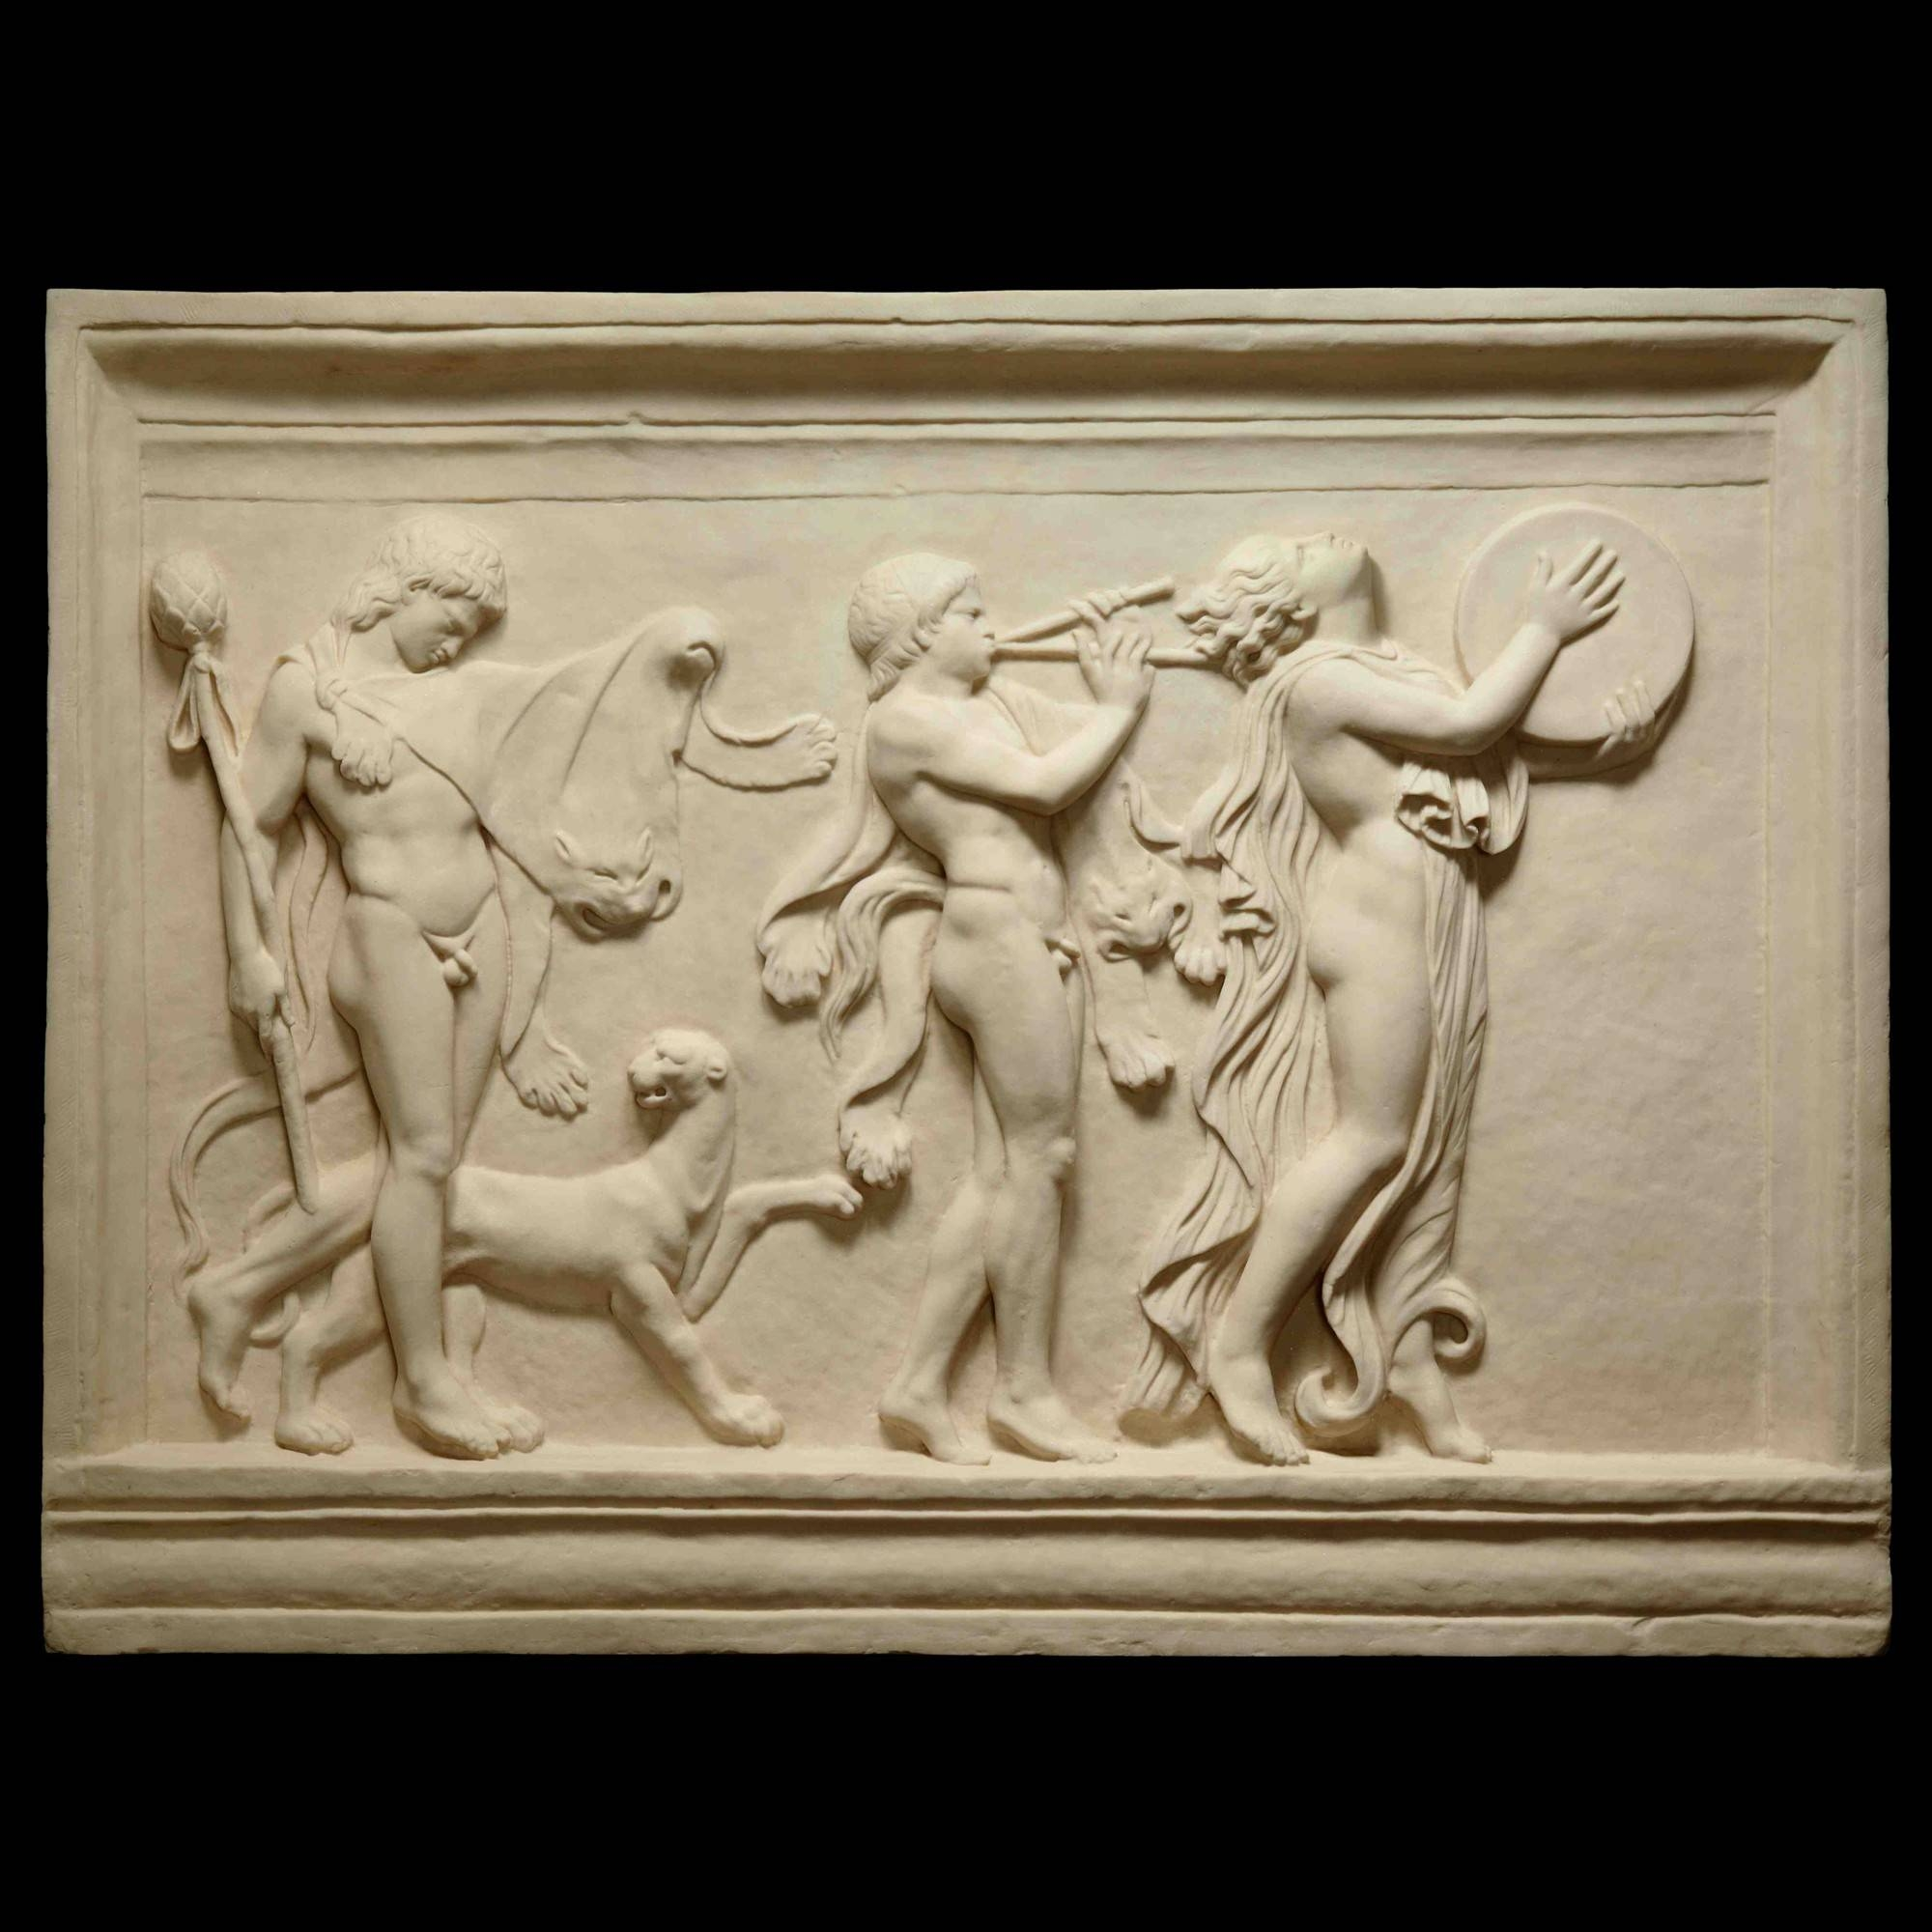 Bacchic Procession – Ancient Greek Marble Wall Relief Plaque | S&s For Most Up To Date Ancient Greek Wall Art (View 17 of 25)